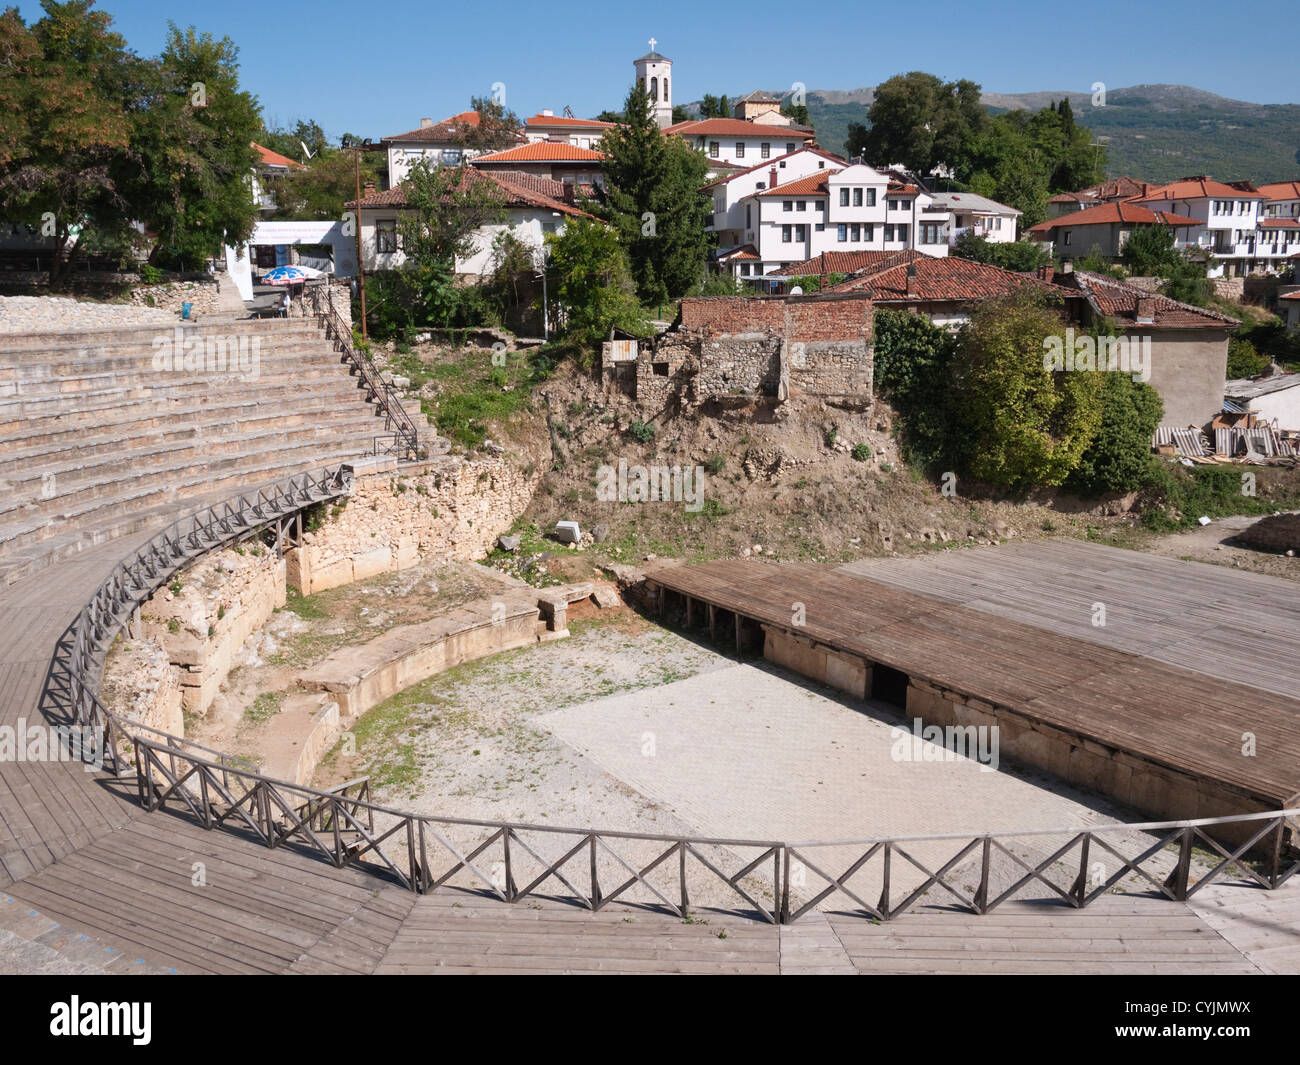 c. 2000 year old Hellenic/Roman amphitheatre, at the UNESCO protected city of Ohrid, Republic of Macedonia. - Stock Image